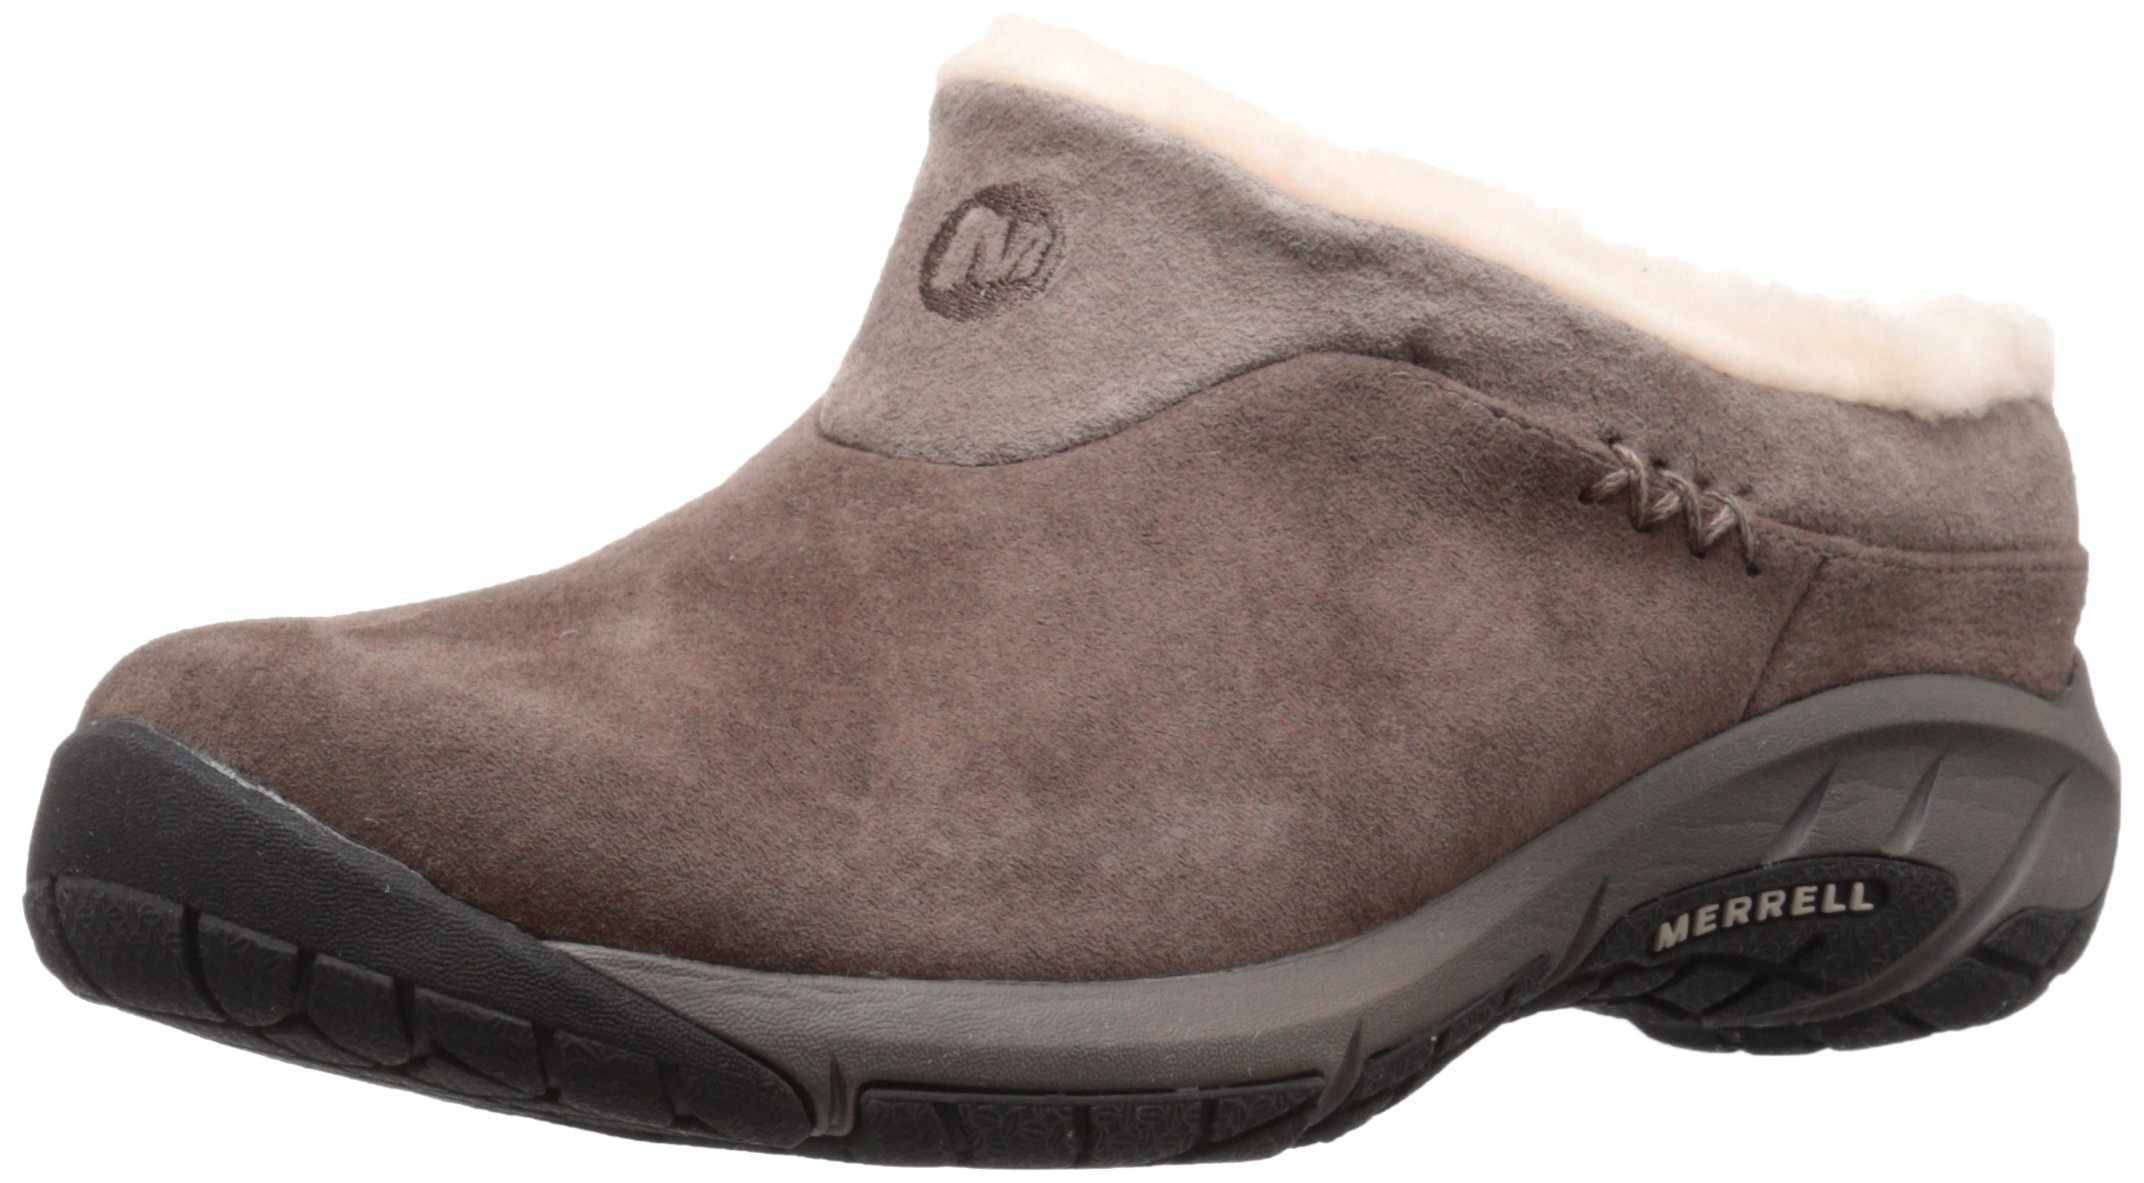 Merrell Women's Encore Ice Slip-On Shoe,Merrell Stone Leather,9.5 M US